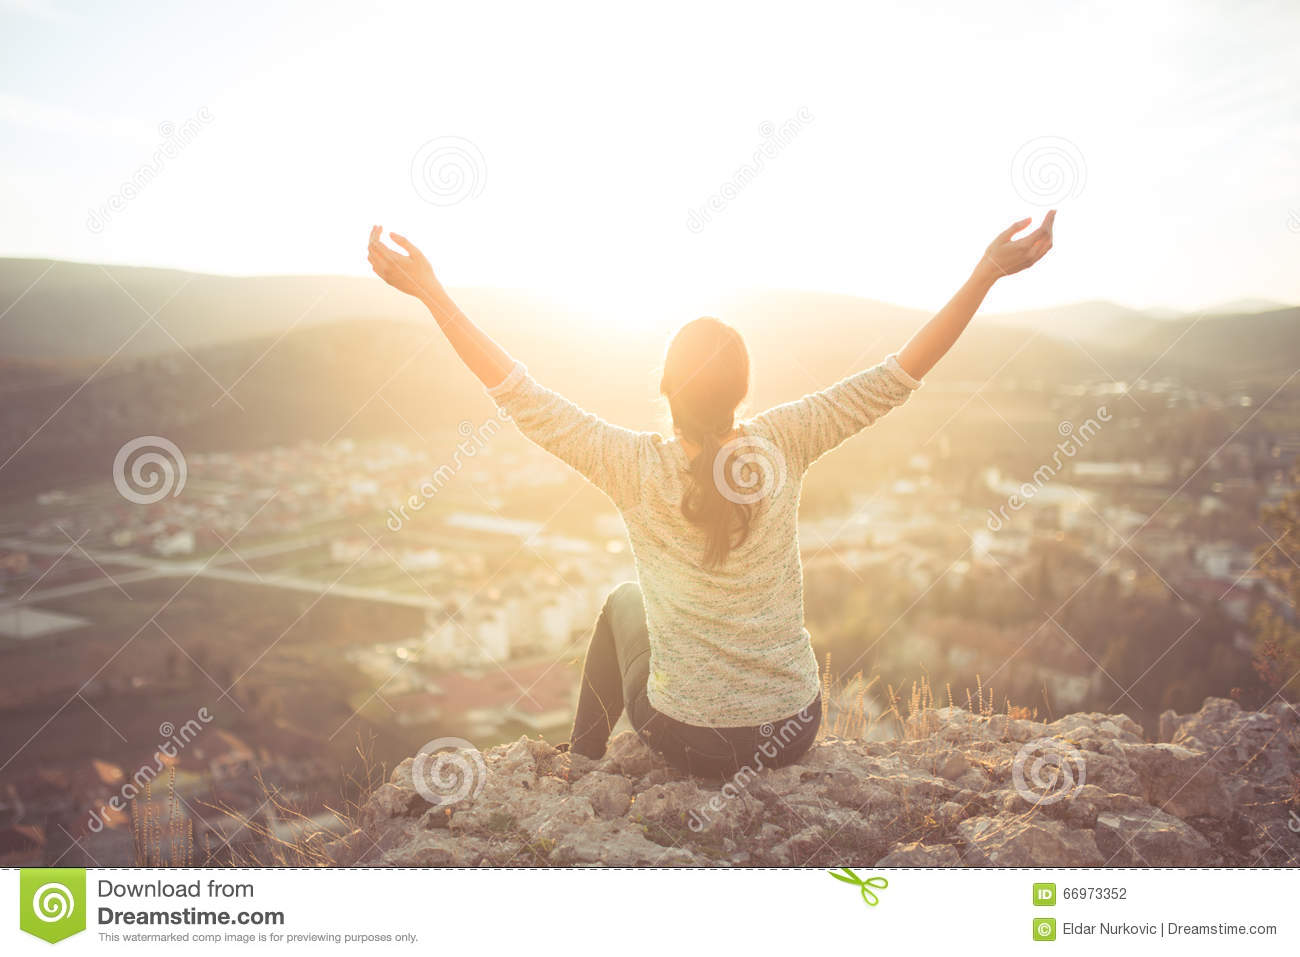 carefree-happy-woman-sitting-top-mountain-edge-cliff-enjoying-sun-her-face-raising-hands-sunlight-rays-enjoying-nature-66973352.jpg